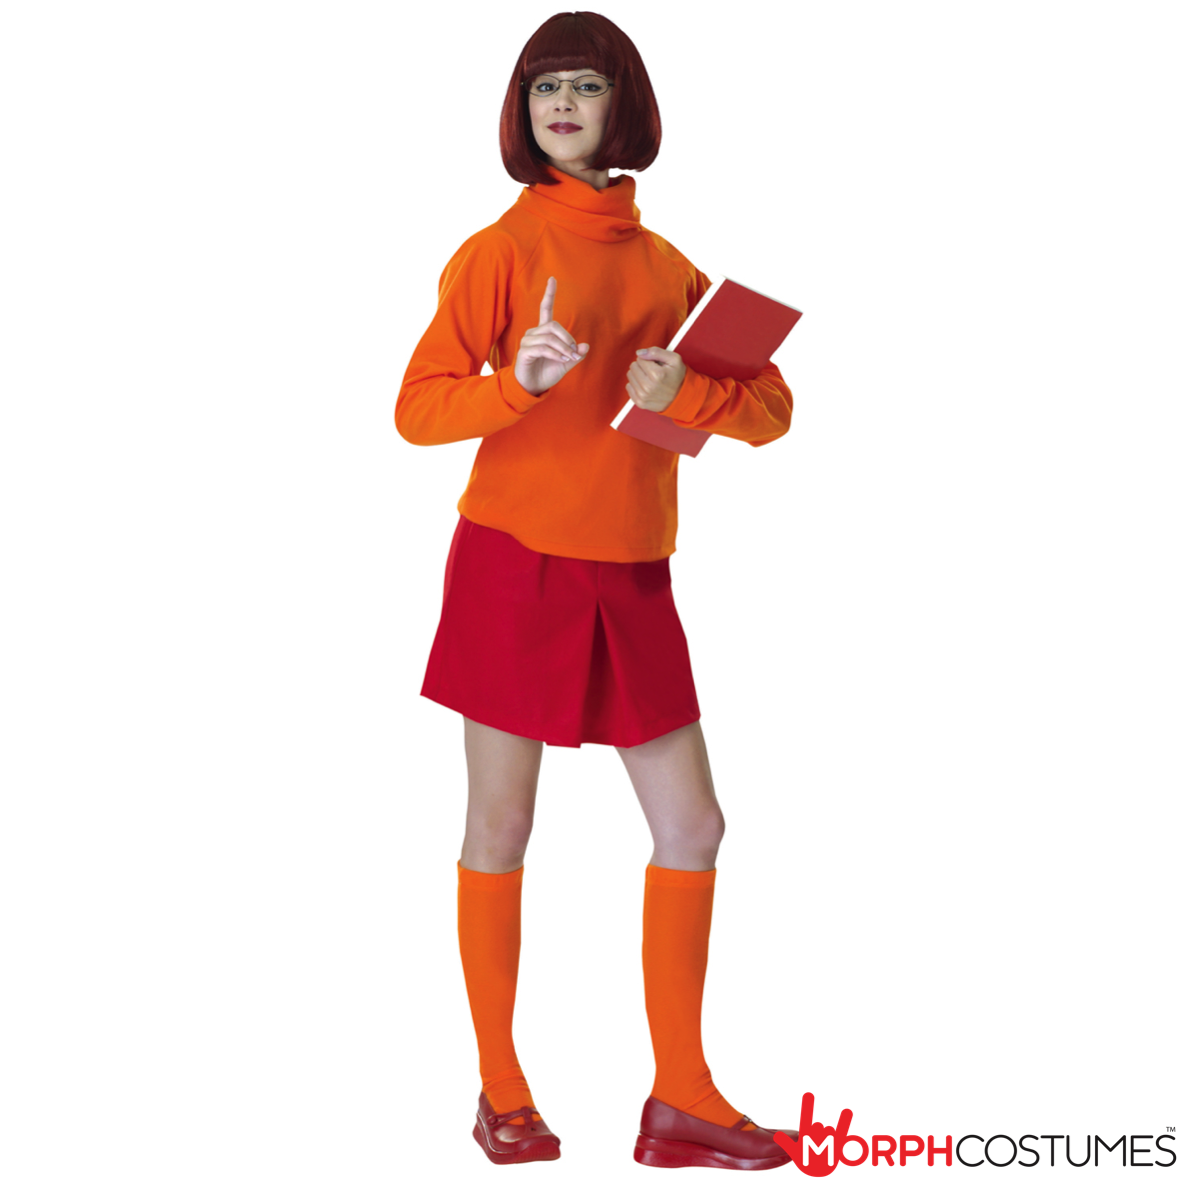 Couples Costume Inspiration: Velma is one of the original geeks and therefore perhaps the coolest of the Mystery Machine mob and now you can be her with the Scooby-Doo Velma Costume.